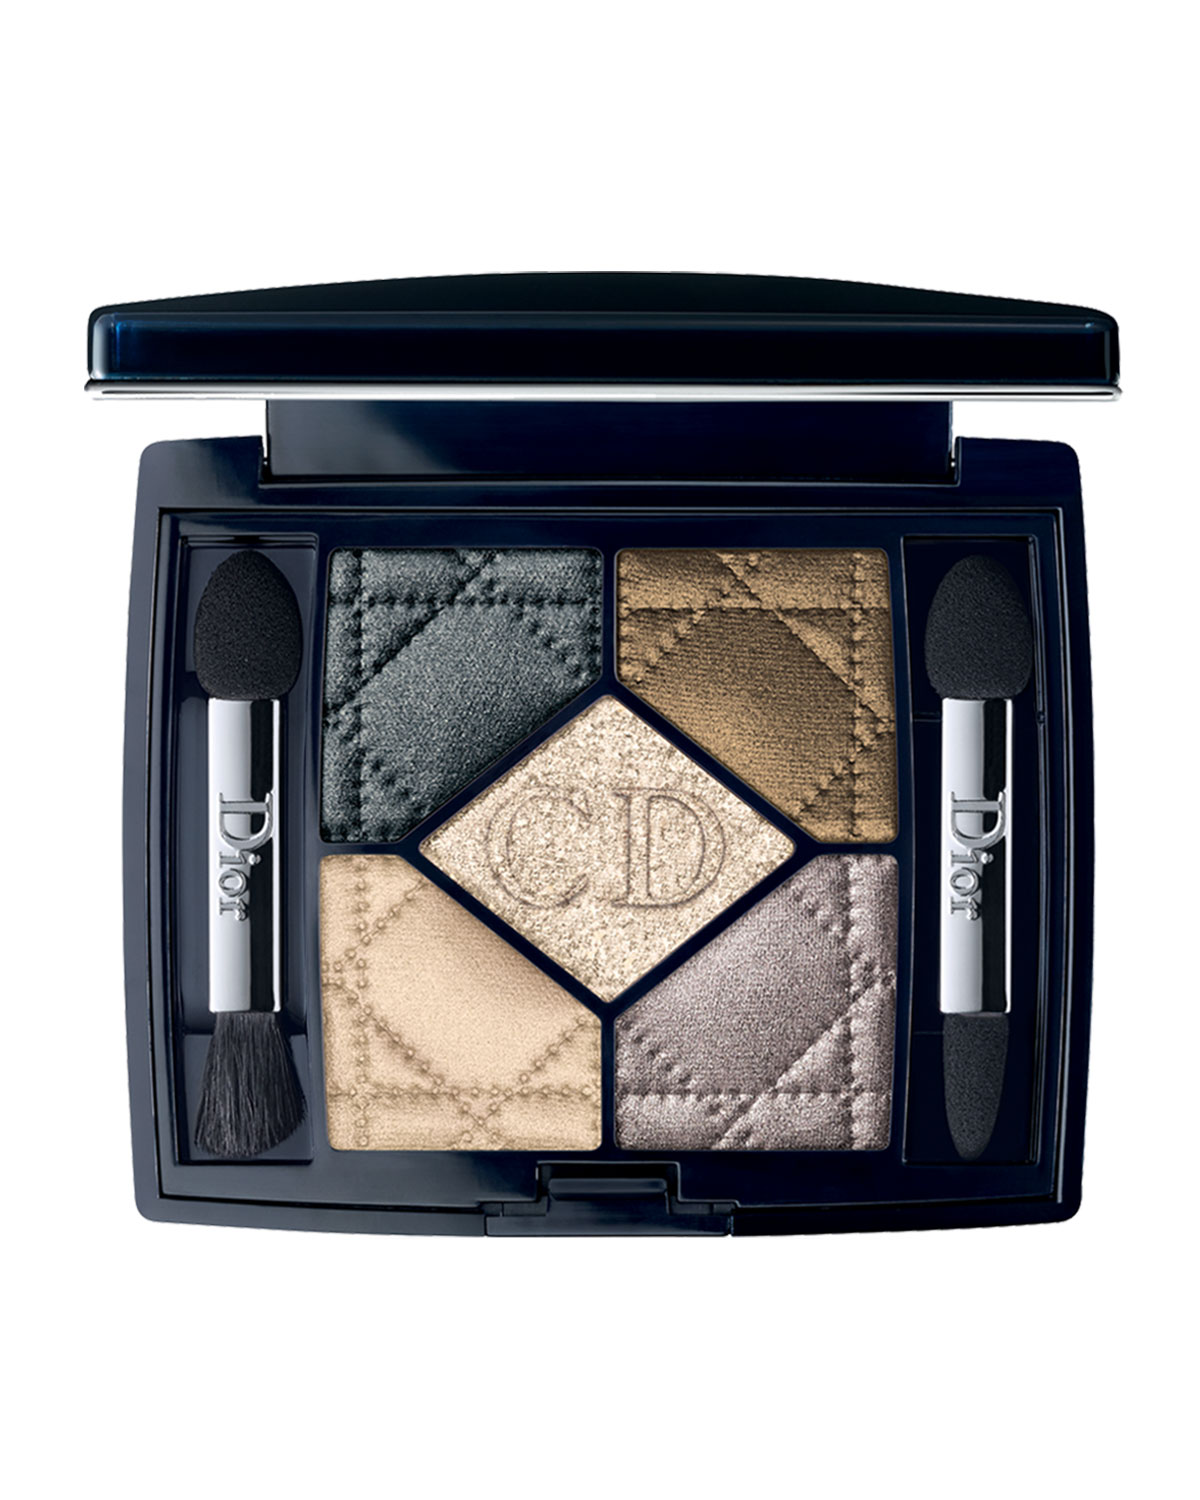 Dior Beauty Limited Edition 5 Couleurs Eyeshadow Palette - State of Gold Holiday Collection, 576 Eternal Gold